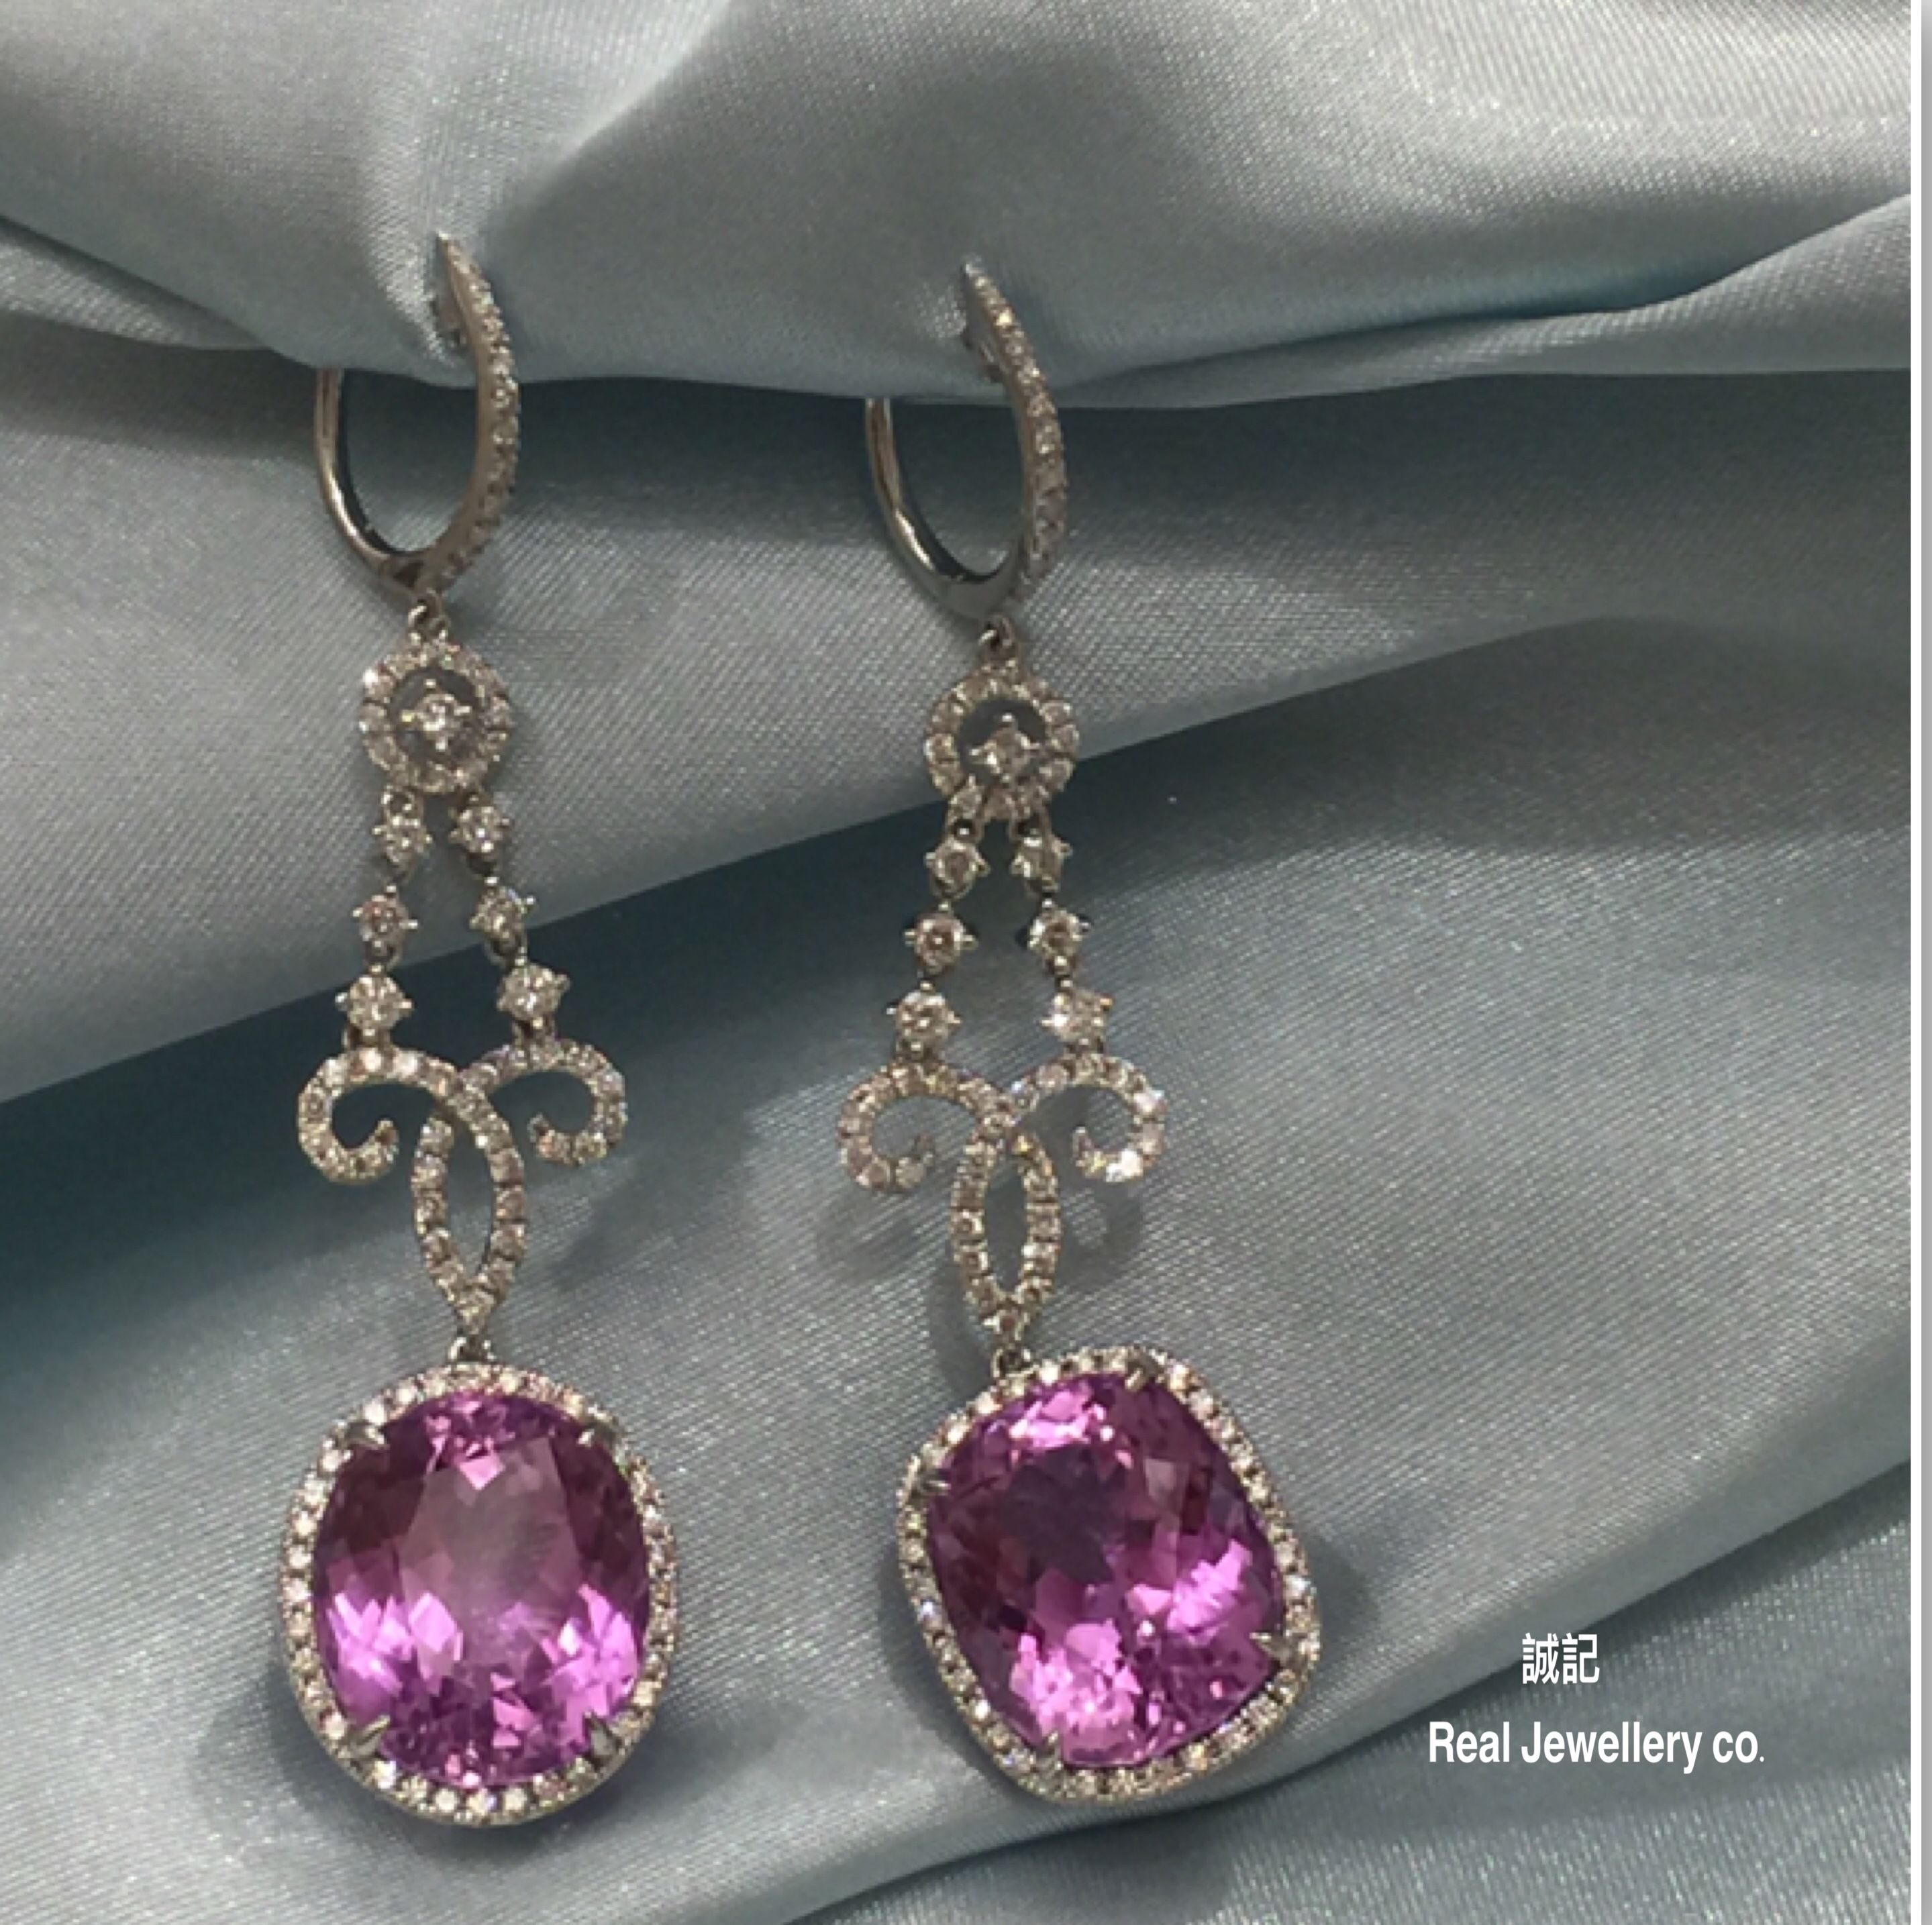 lewis white renee large operandi antique moda loading earrings by kunzite waterfall